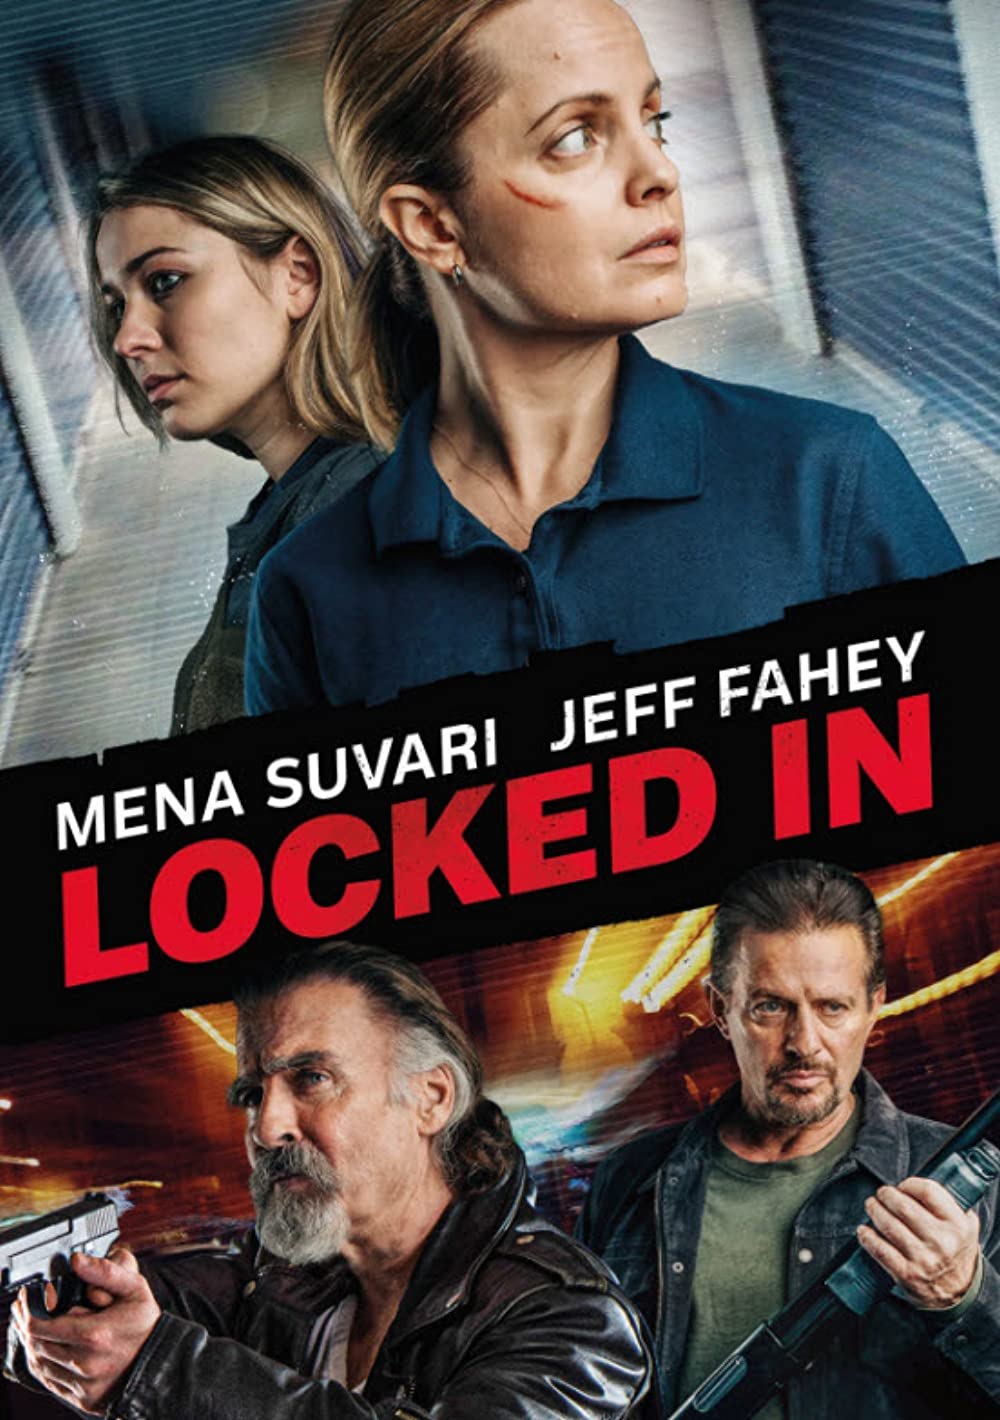 Locked In 2021 English Full Movie 280MB HDRip Download